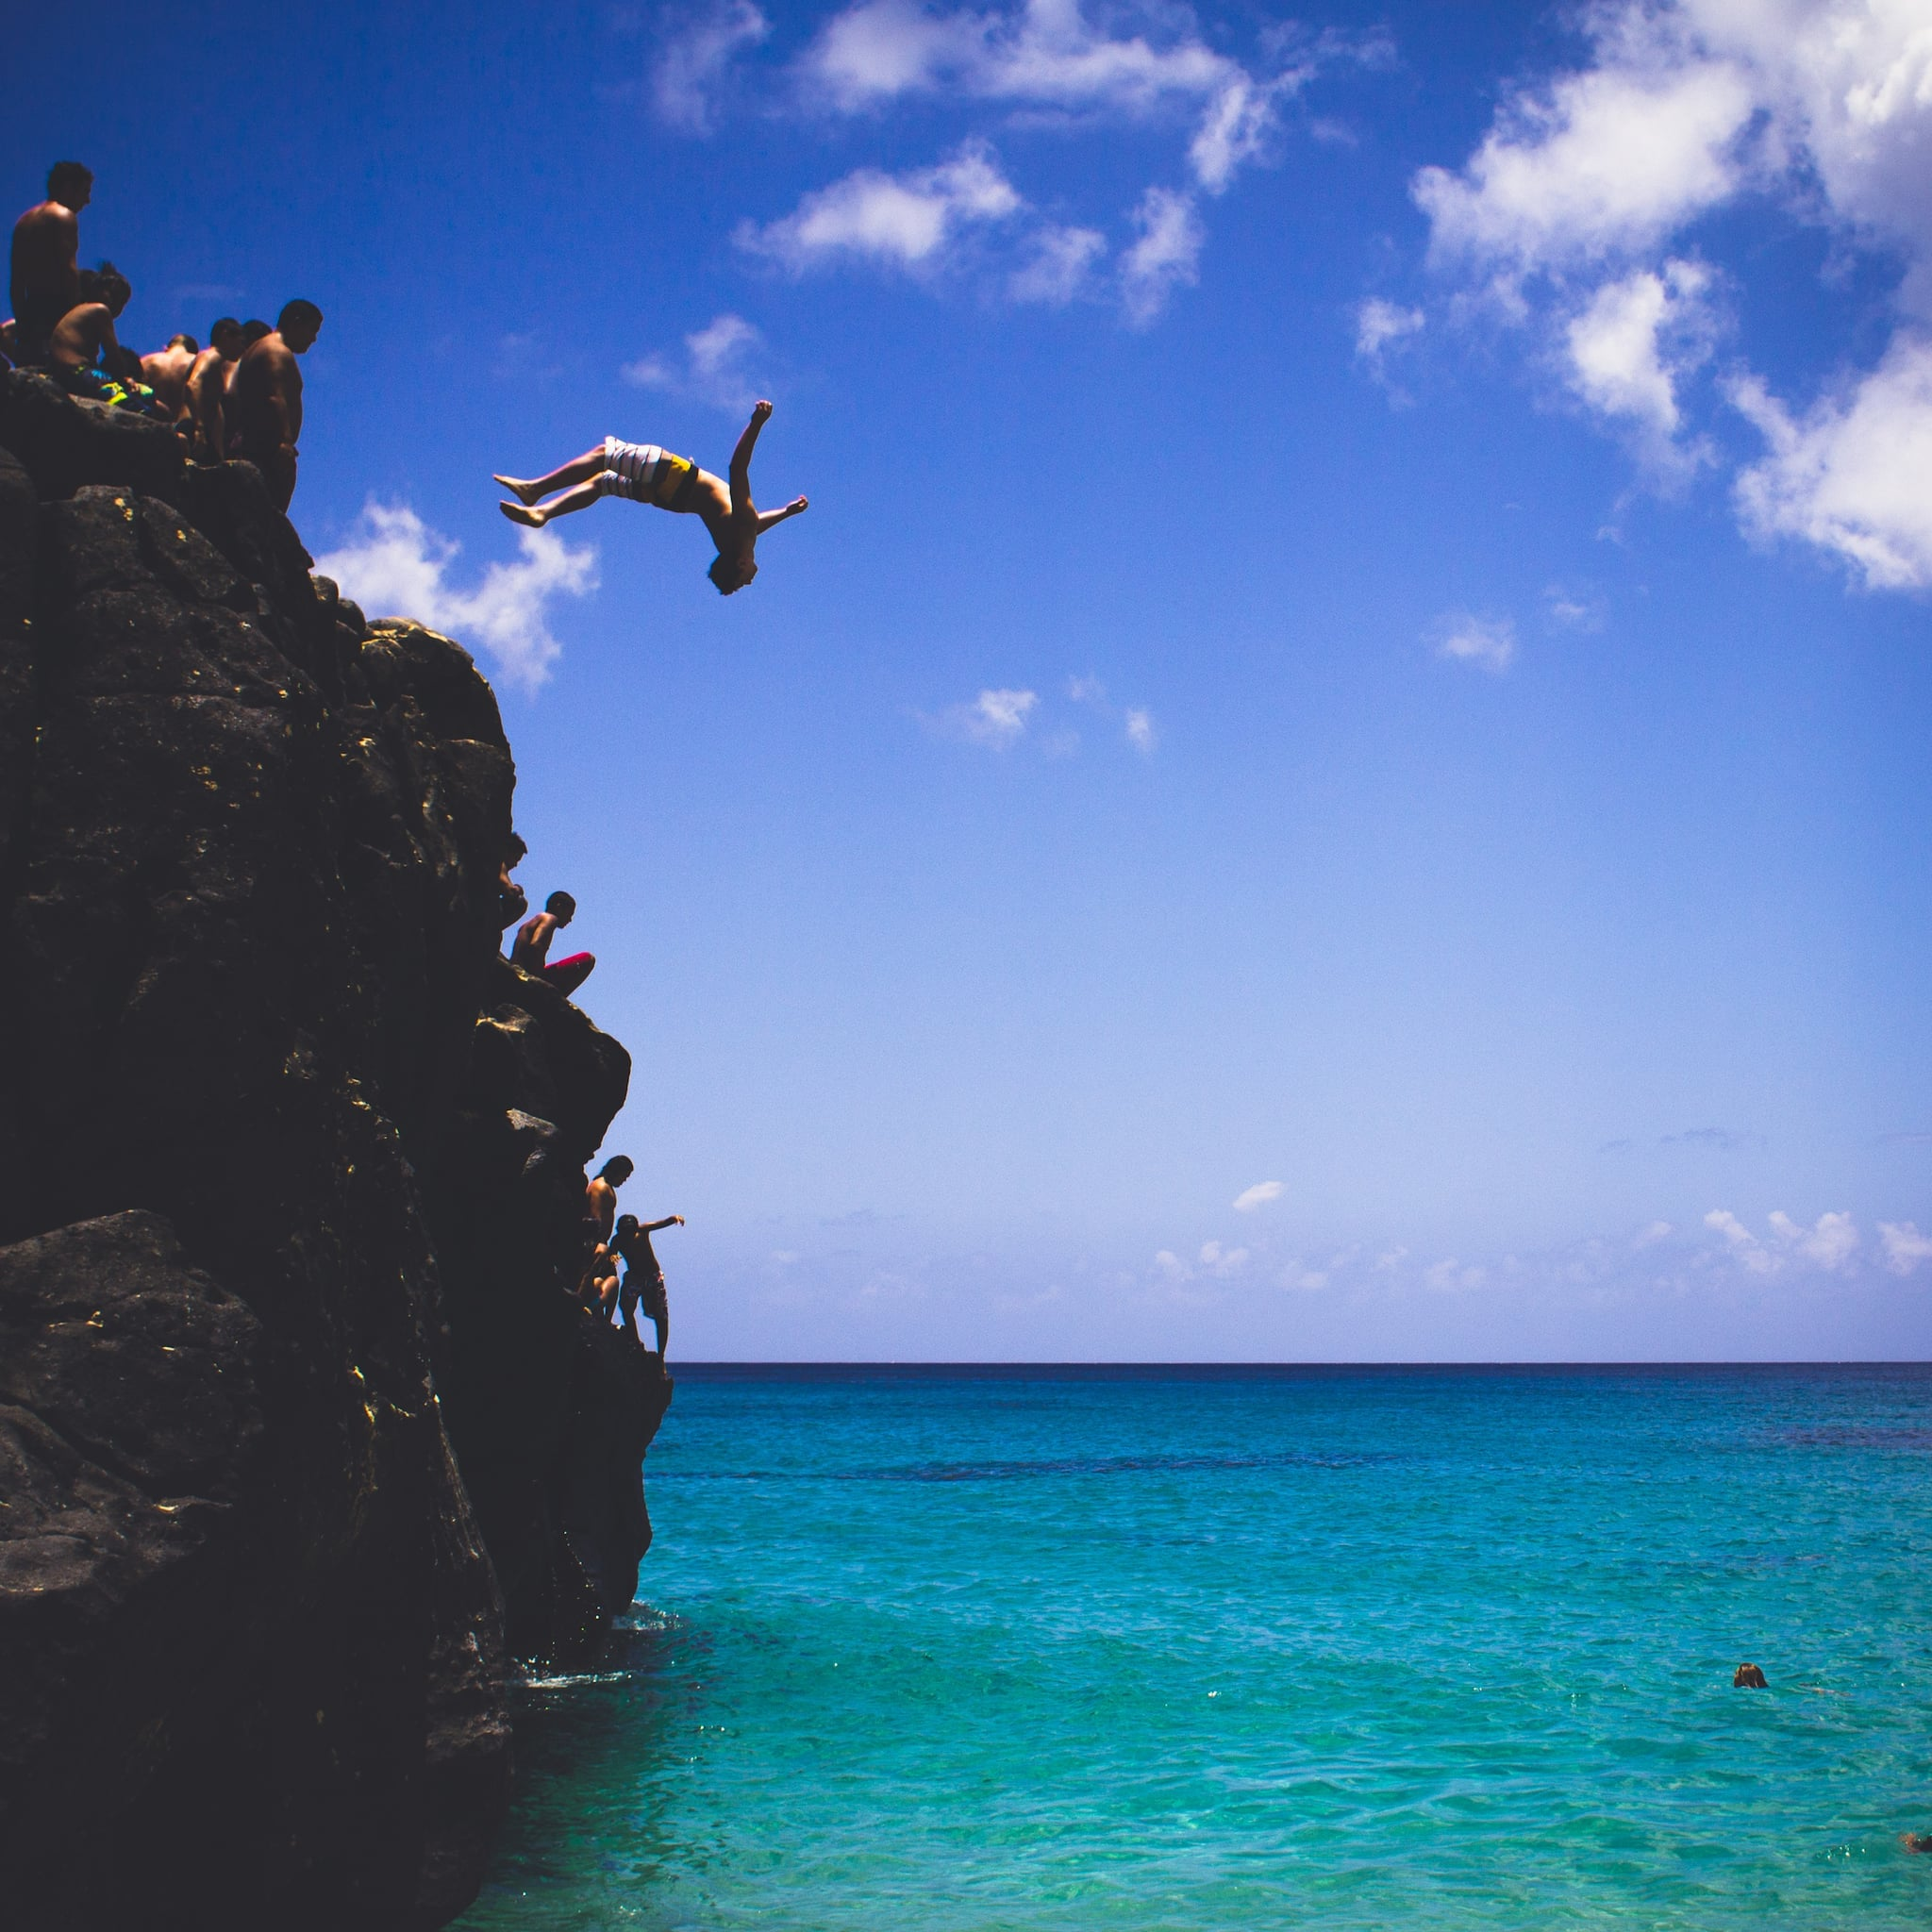 Jump off a cliff 100 things to do before you die popsugar smart living - Highest cliff dive ever ...